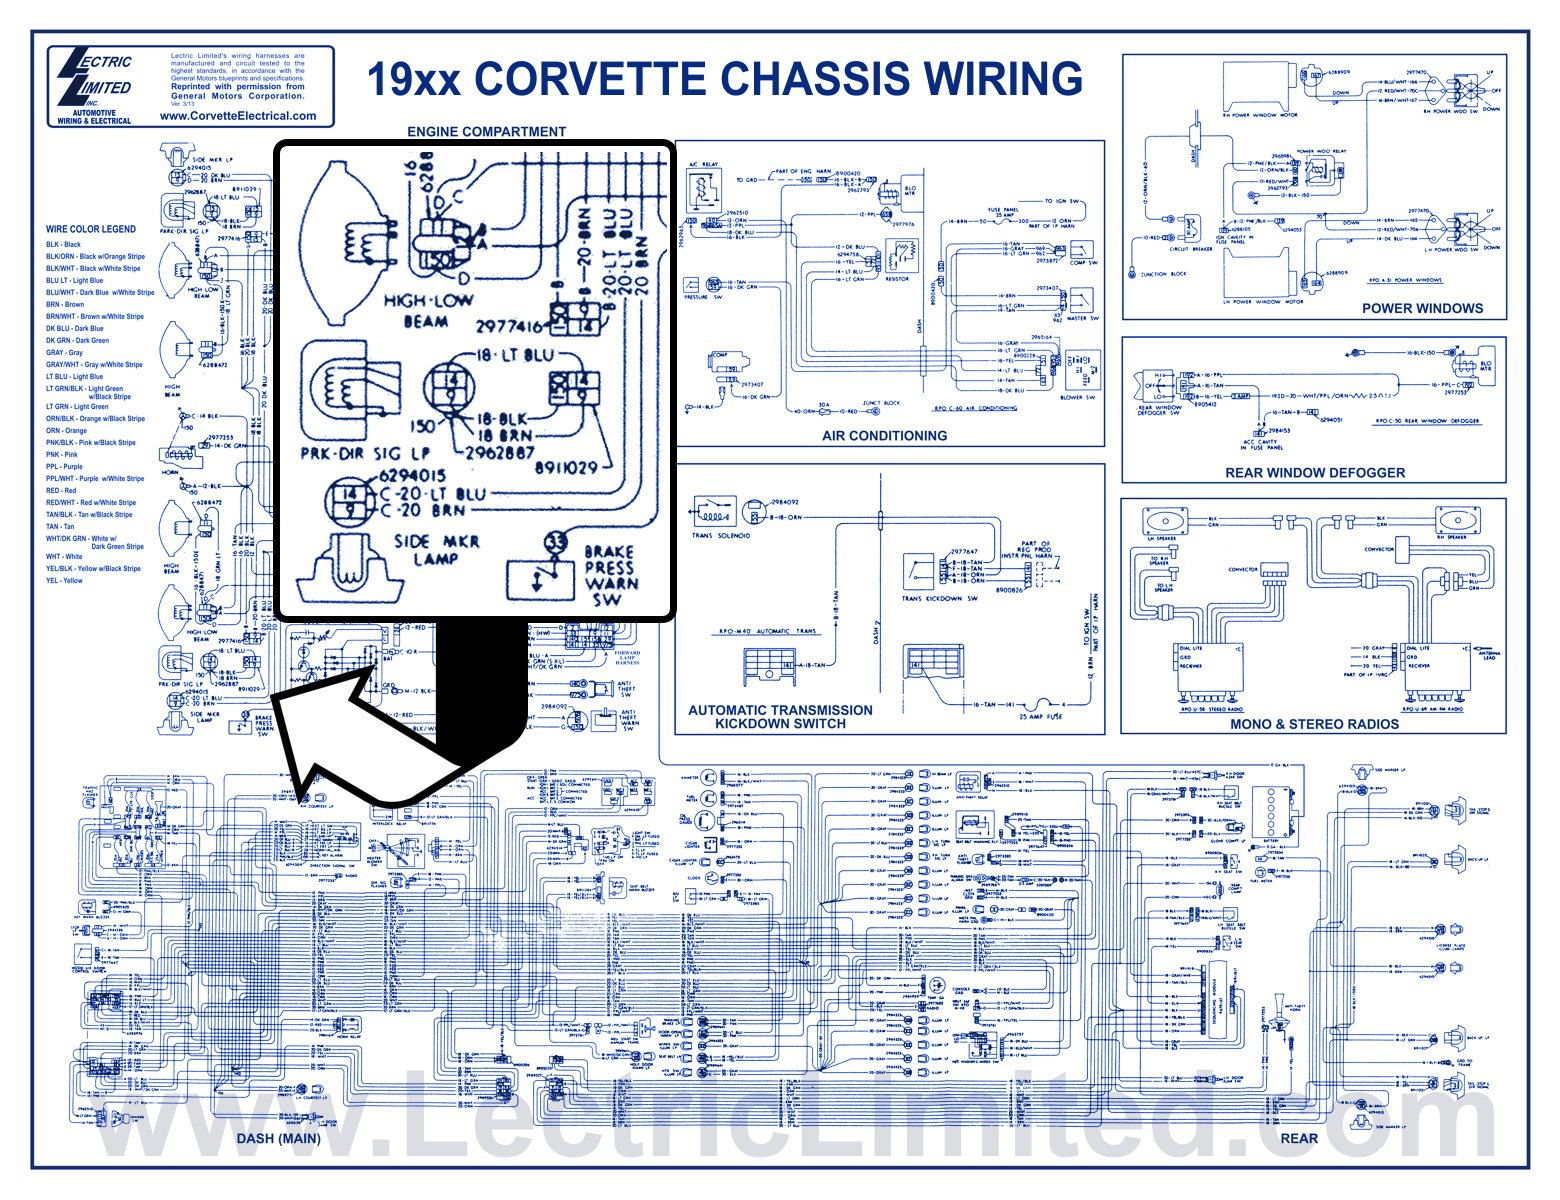 1973 camaro wiring diagram 1974 camaro wiring diagram